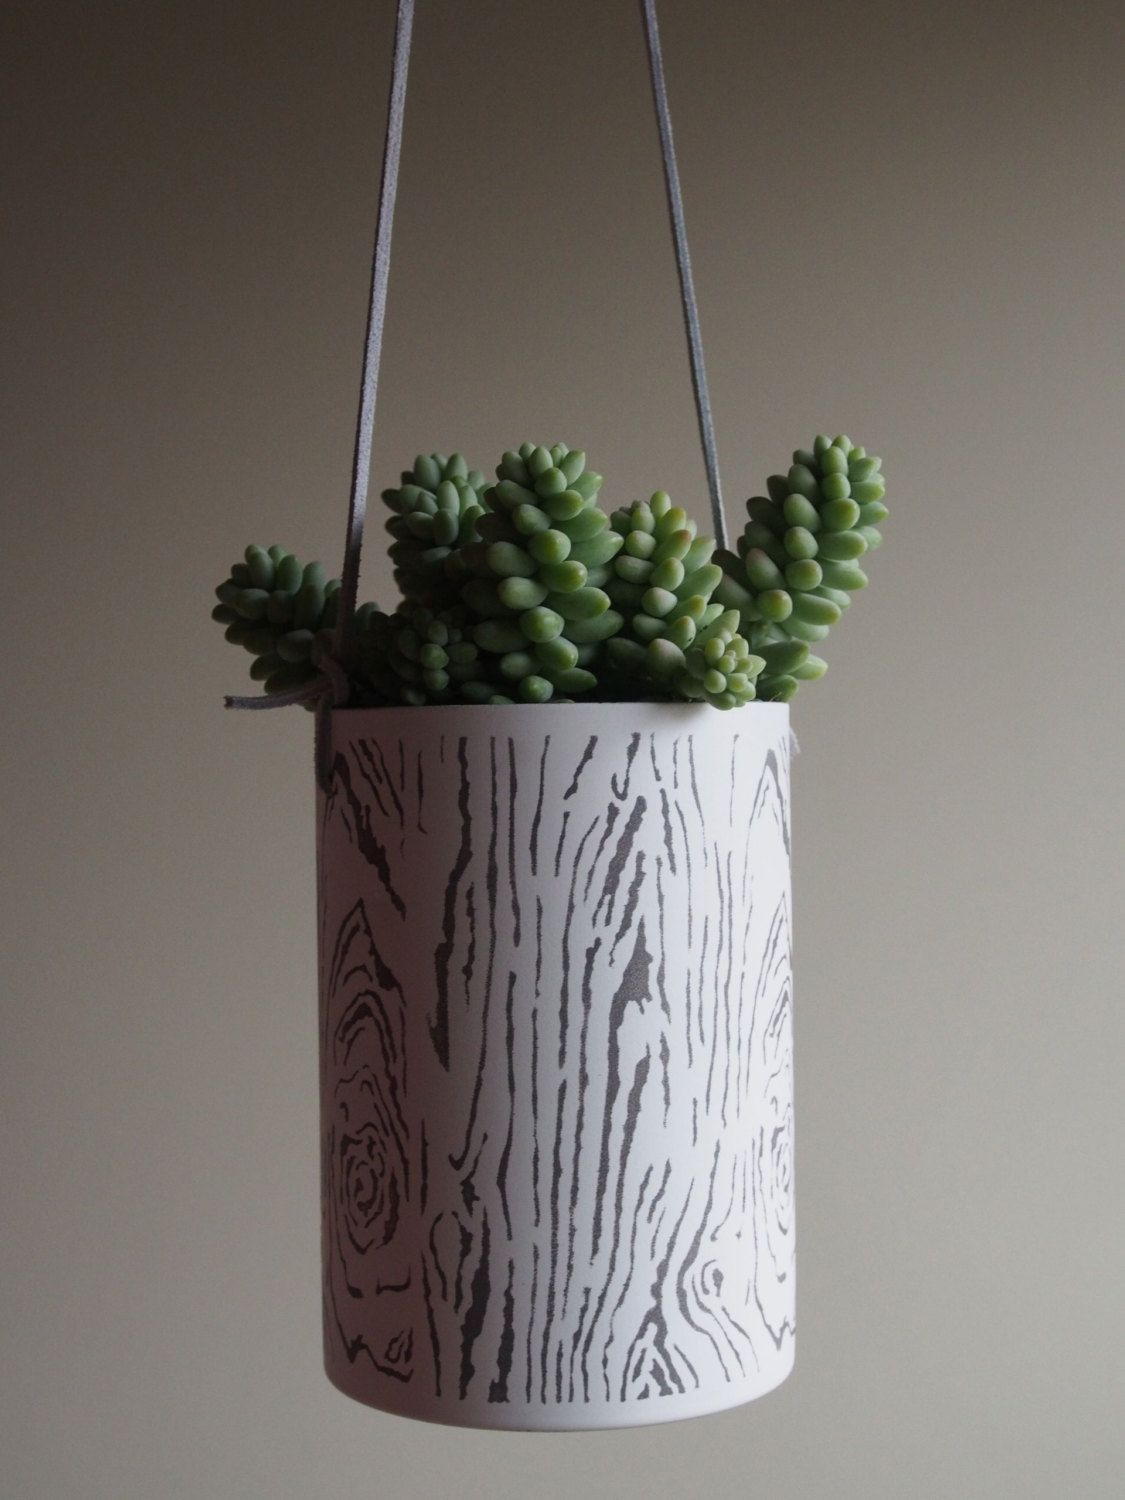 #Planters #airplants Snow White Bark hanging metal succulent planter by PlantworksPDX, $57.00